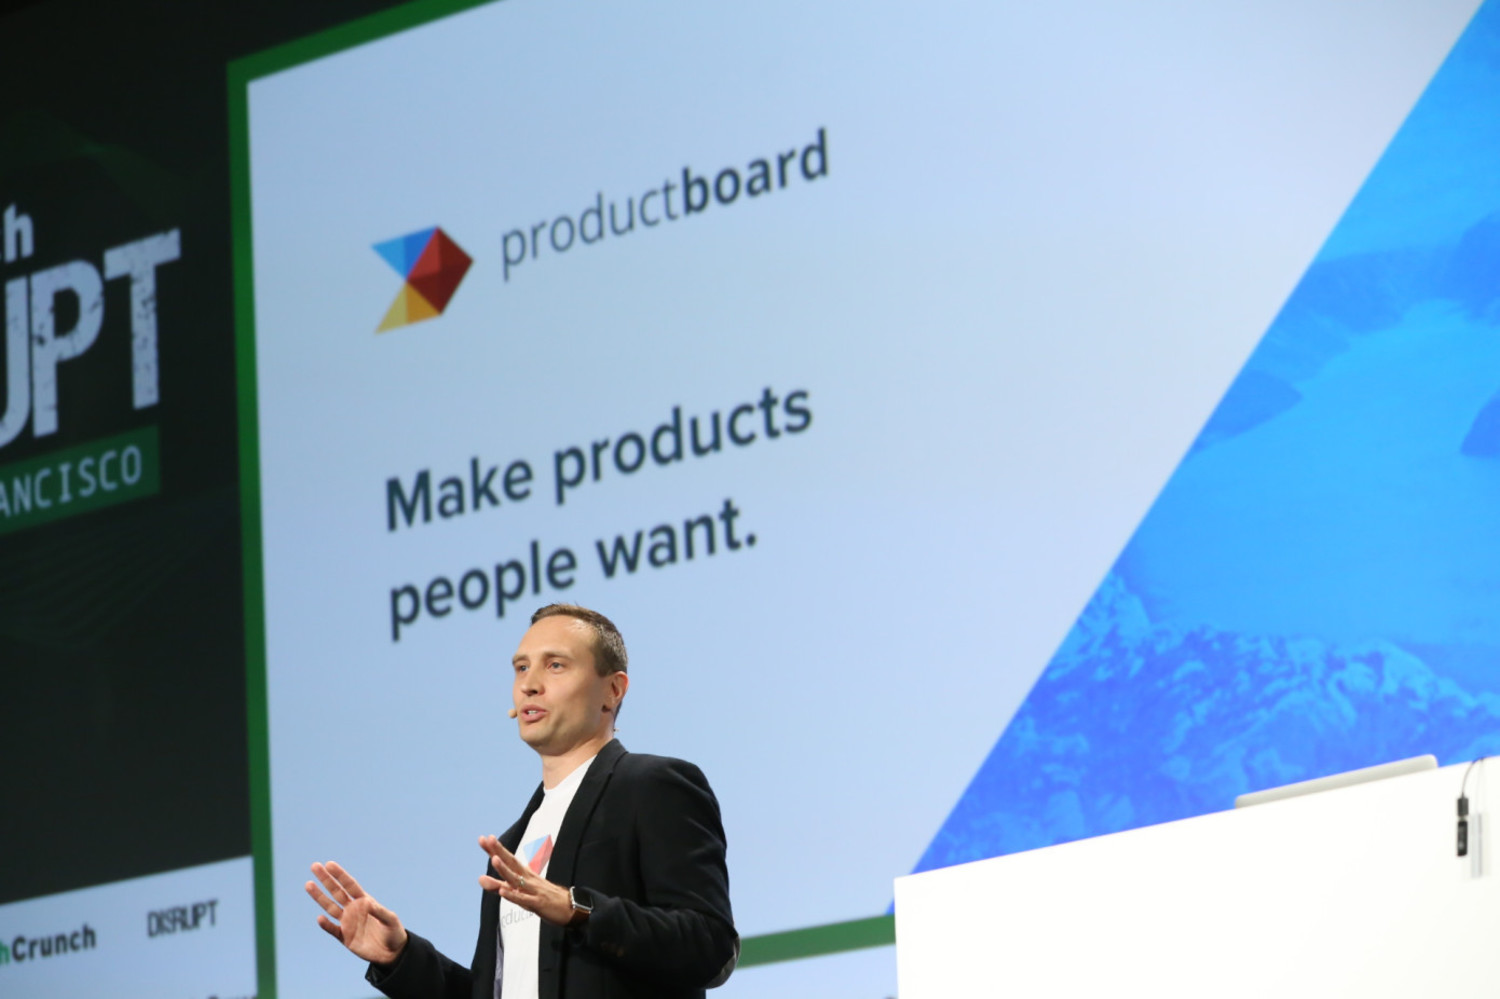 As product development incorporates more feedback, development toolkit productboard raises $8M